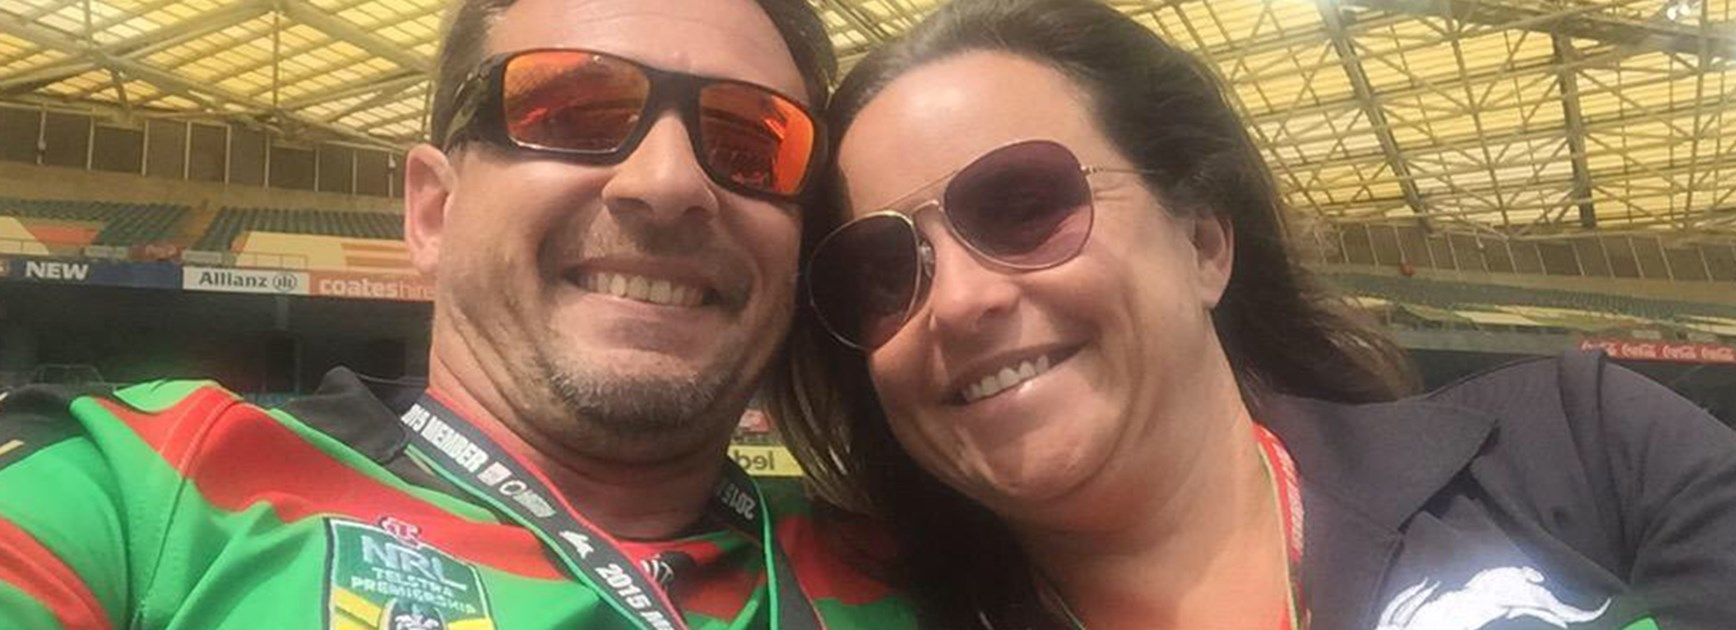 Lifelong fan welcomes Rabbitohs to Mudgee